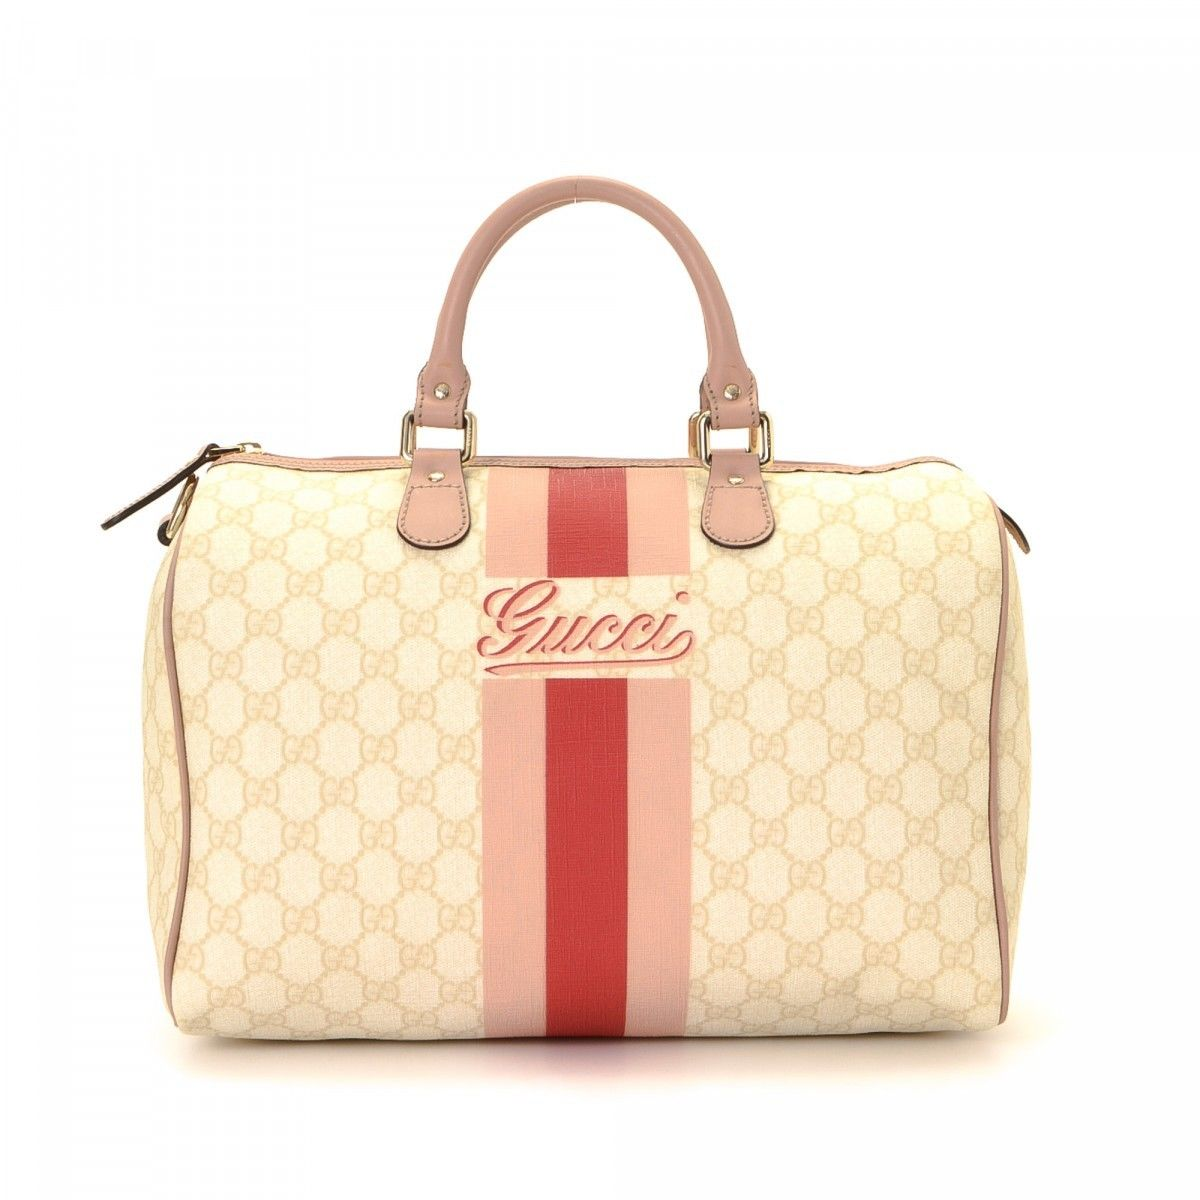 Gucci Joy Boston Bag Gg Supreme Coated Canvas Lxrandco Pre Owned Luxury Vintage